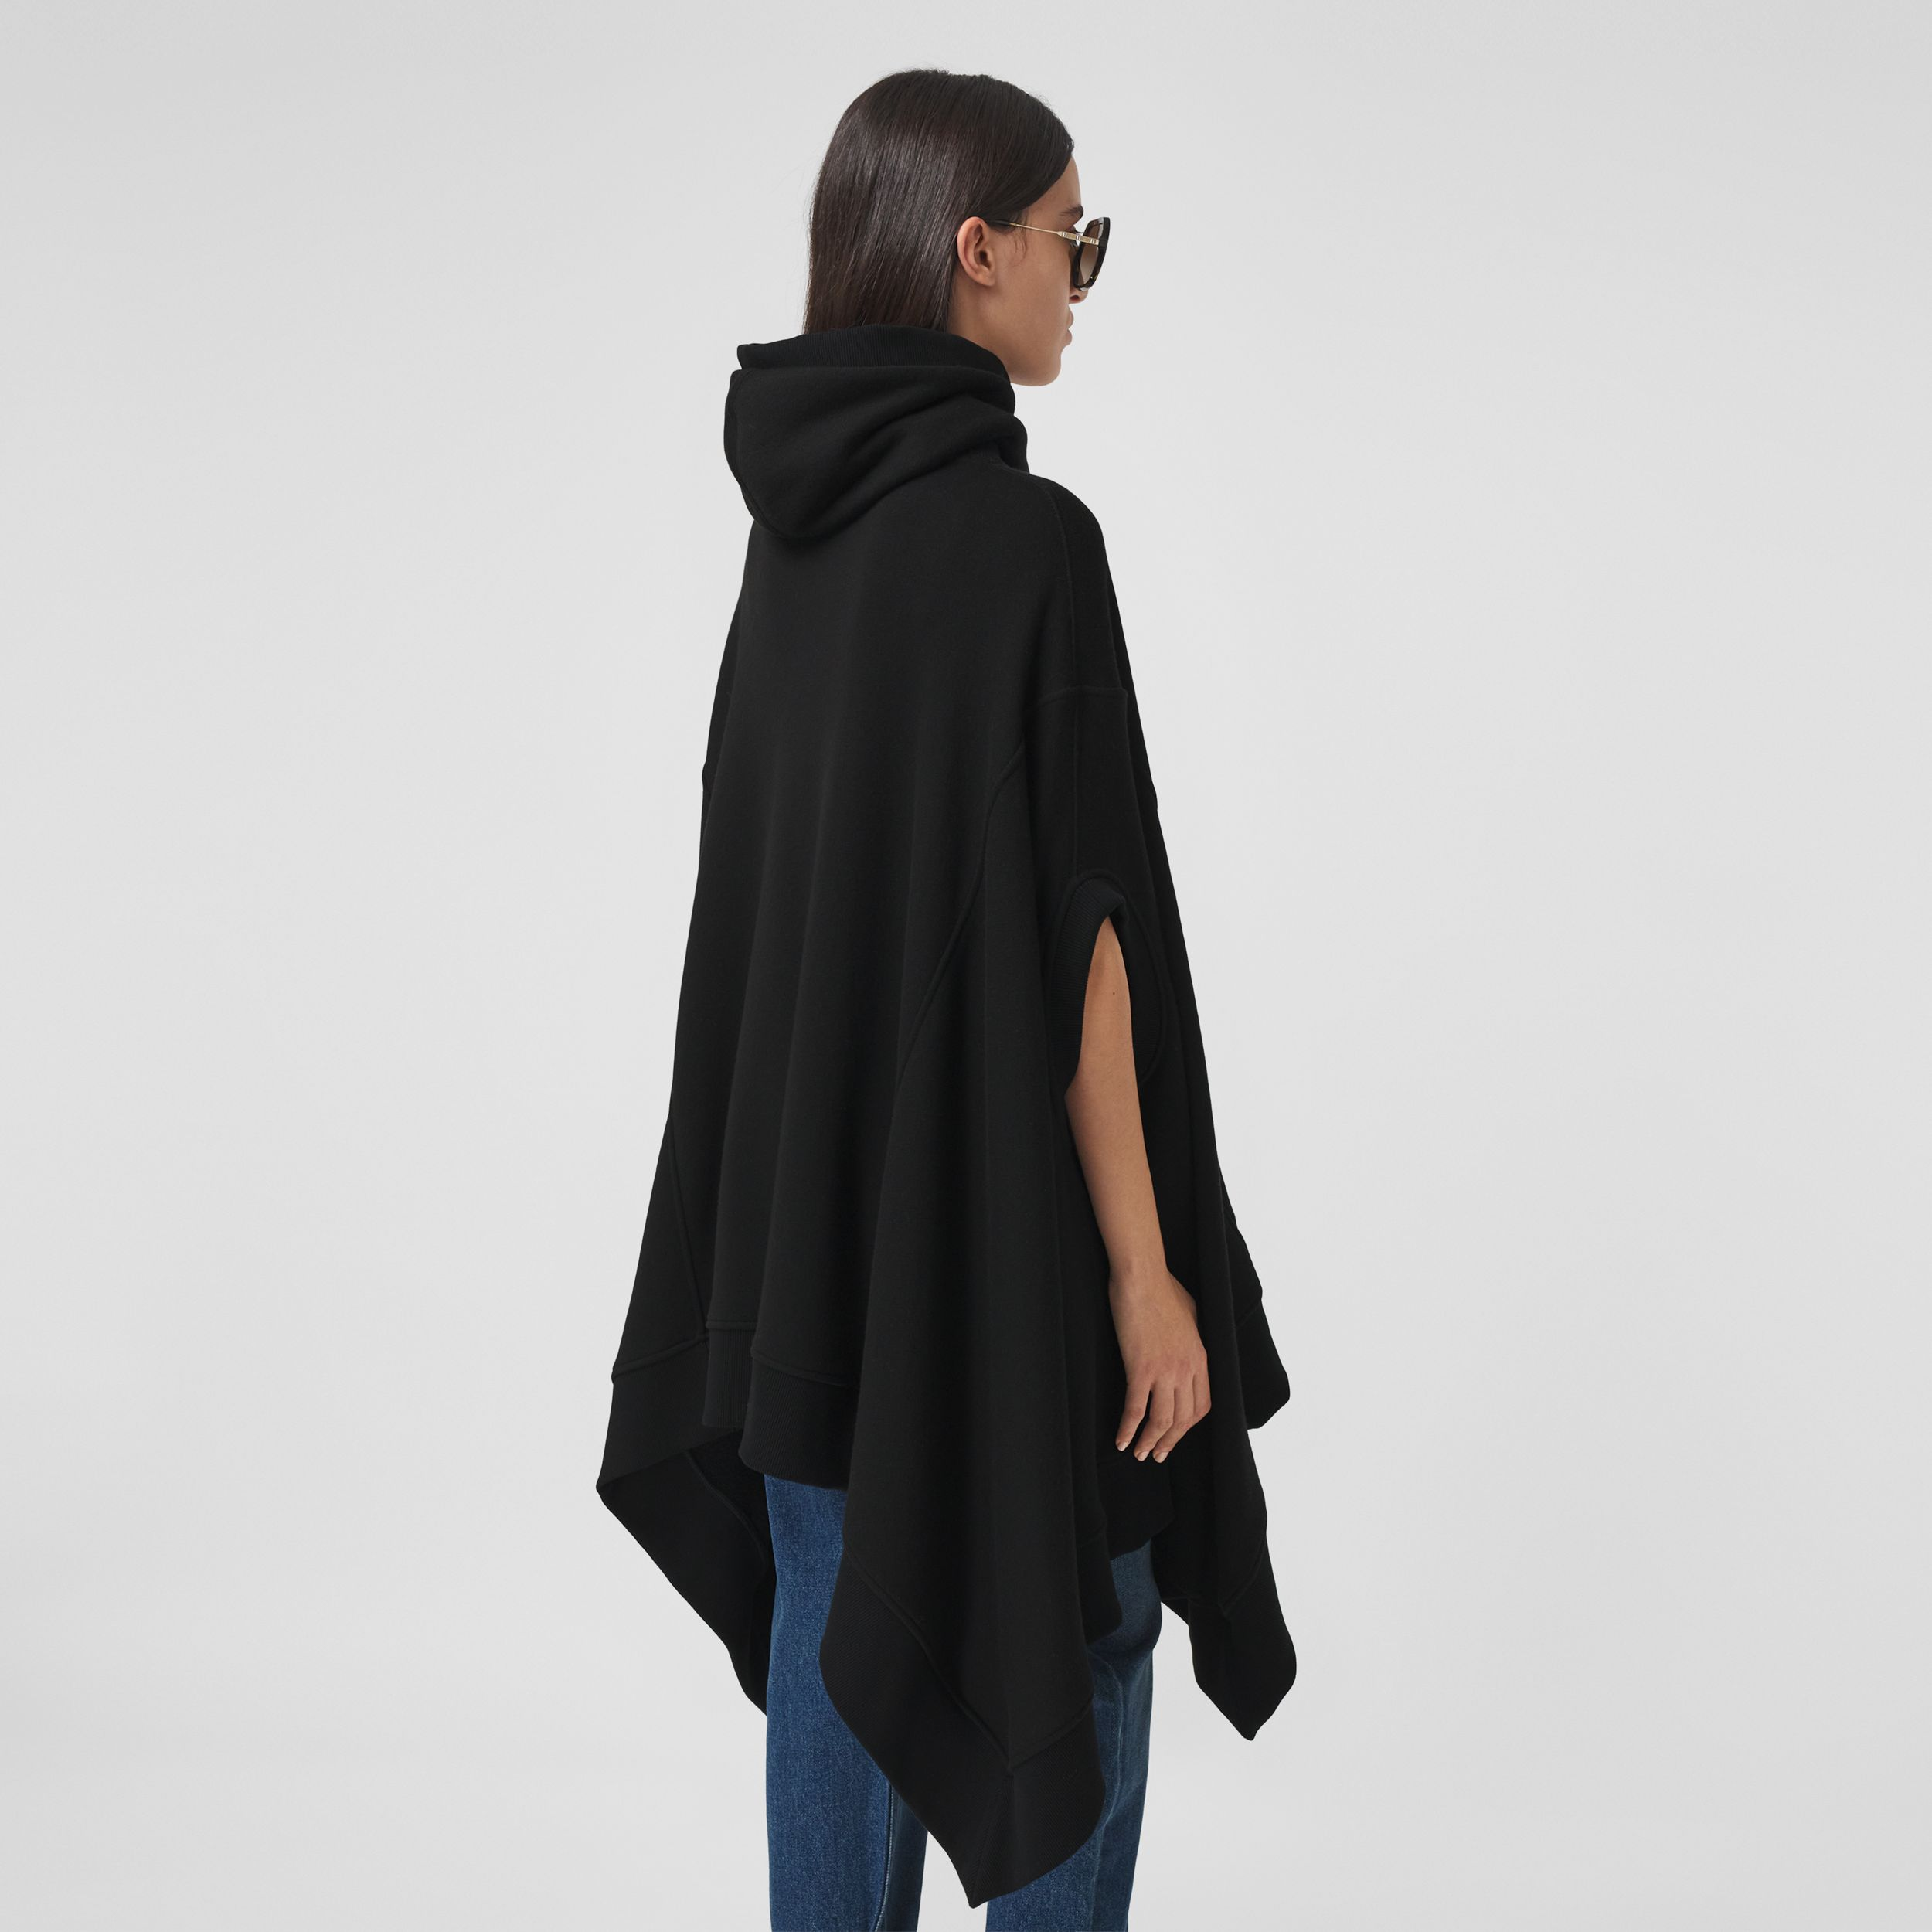 Cut-out Sleeve Jersey Hooded Cape in Black - Women | Burberry - 3